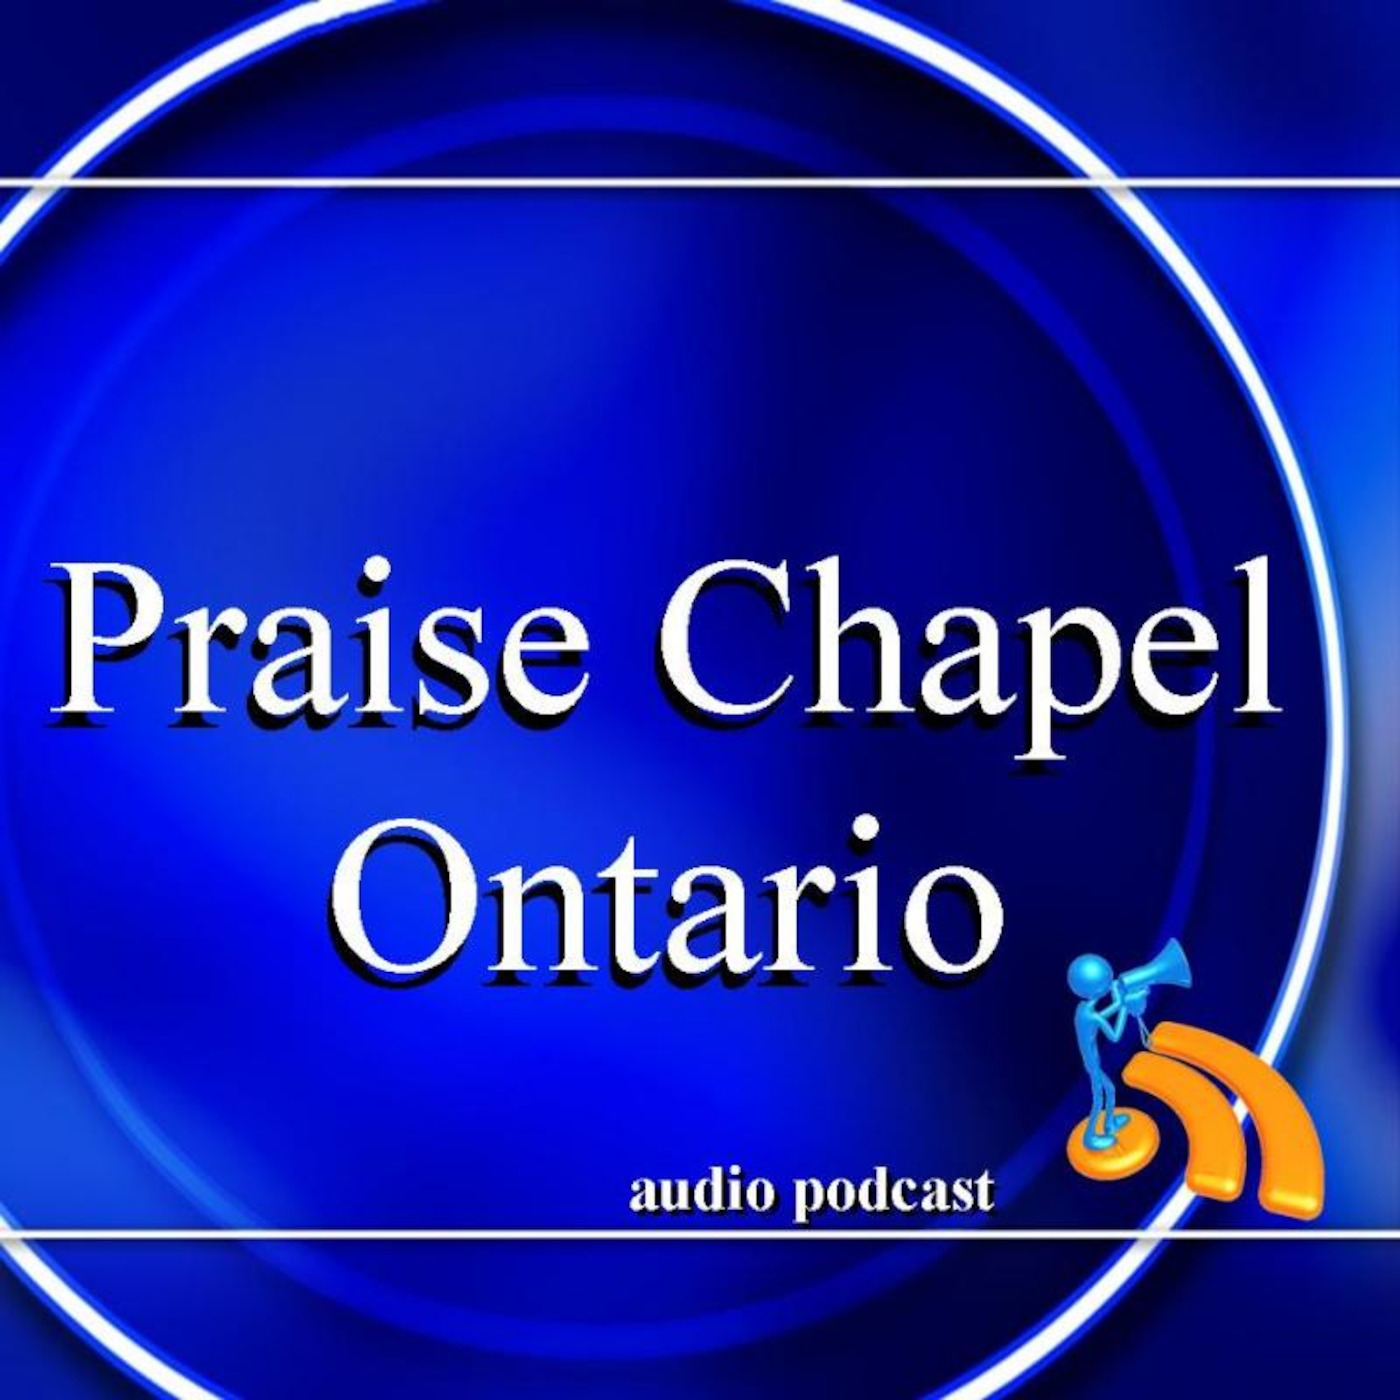 Praise Chapel Ontario Podcast